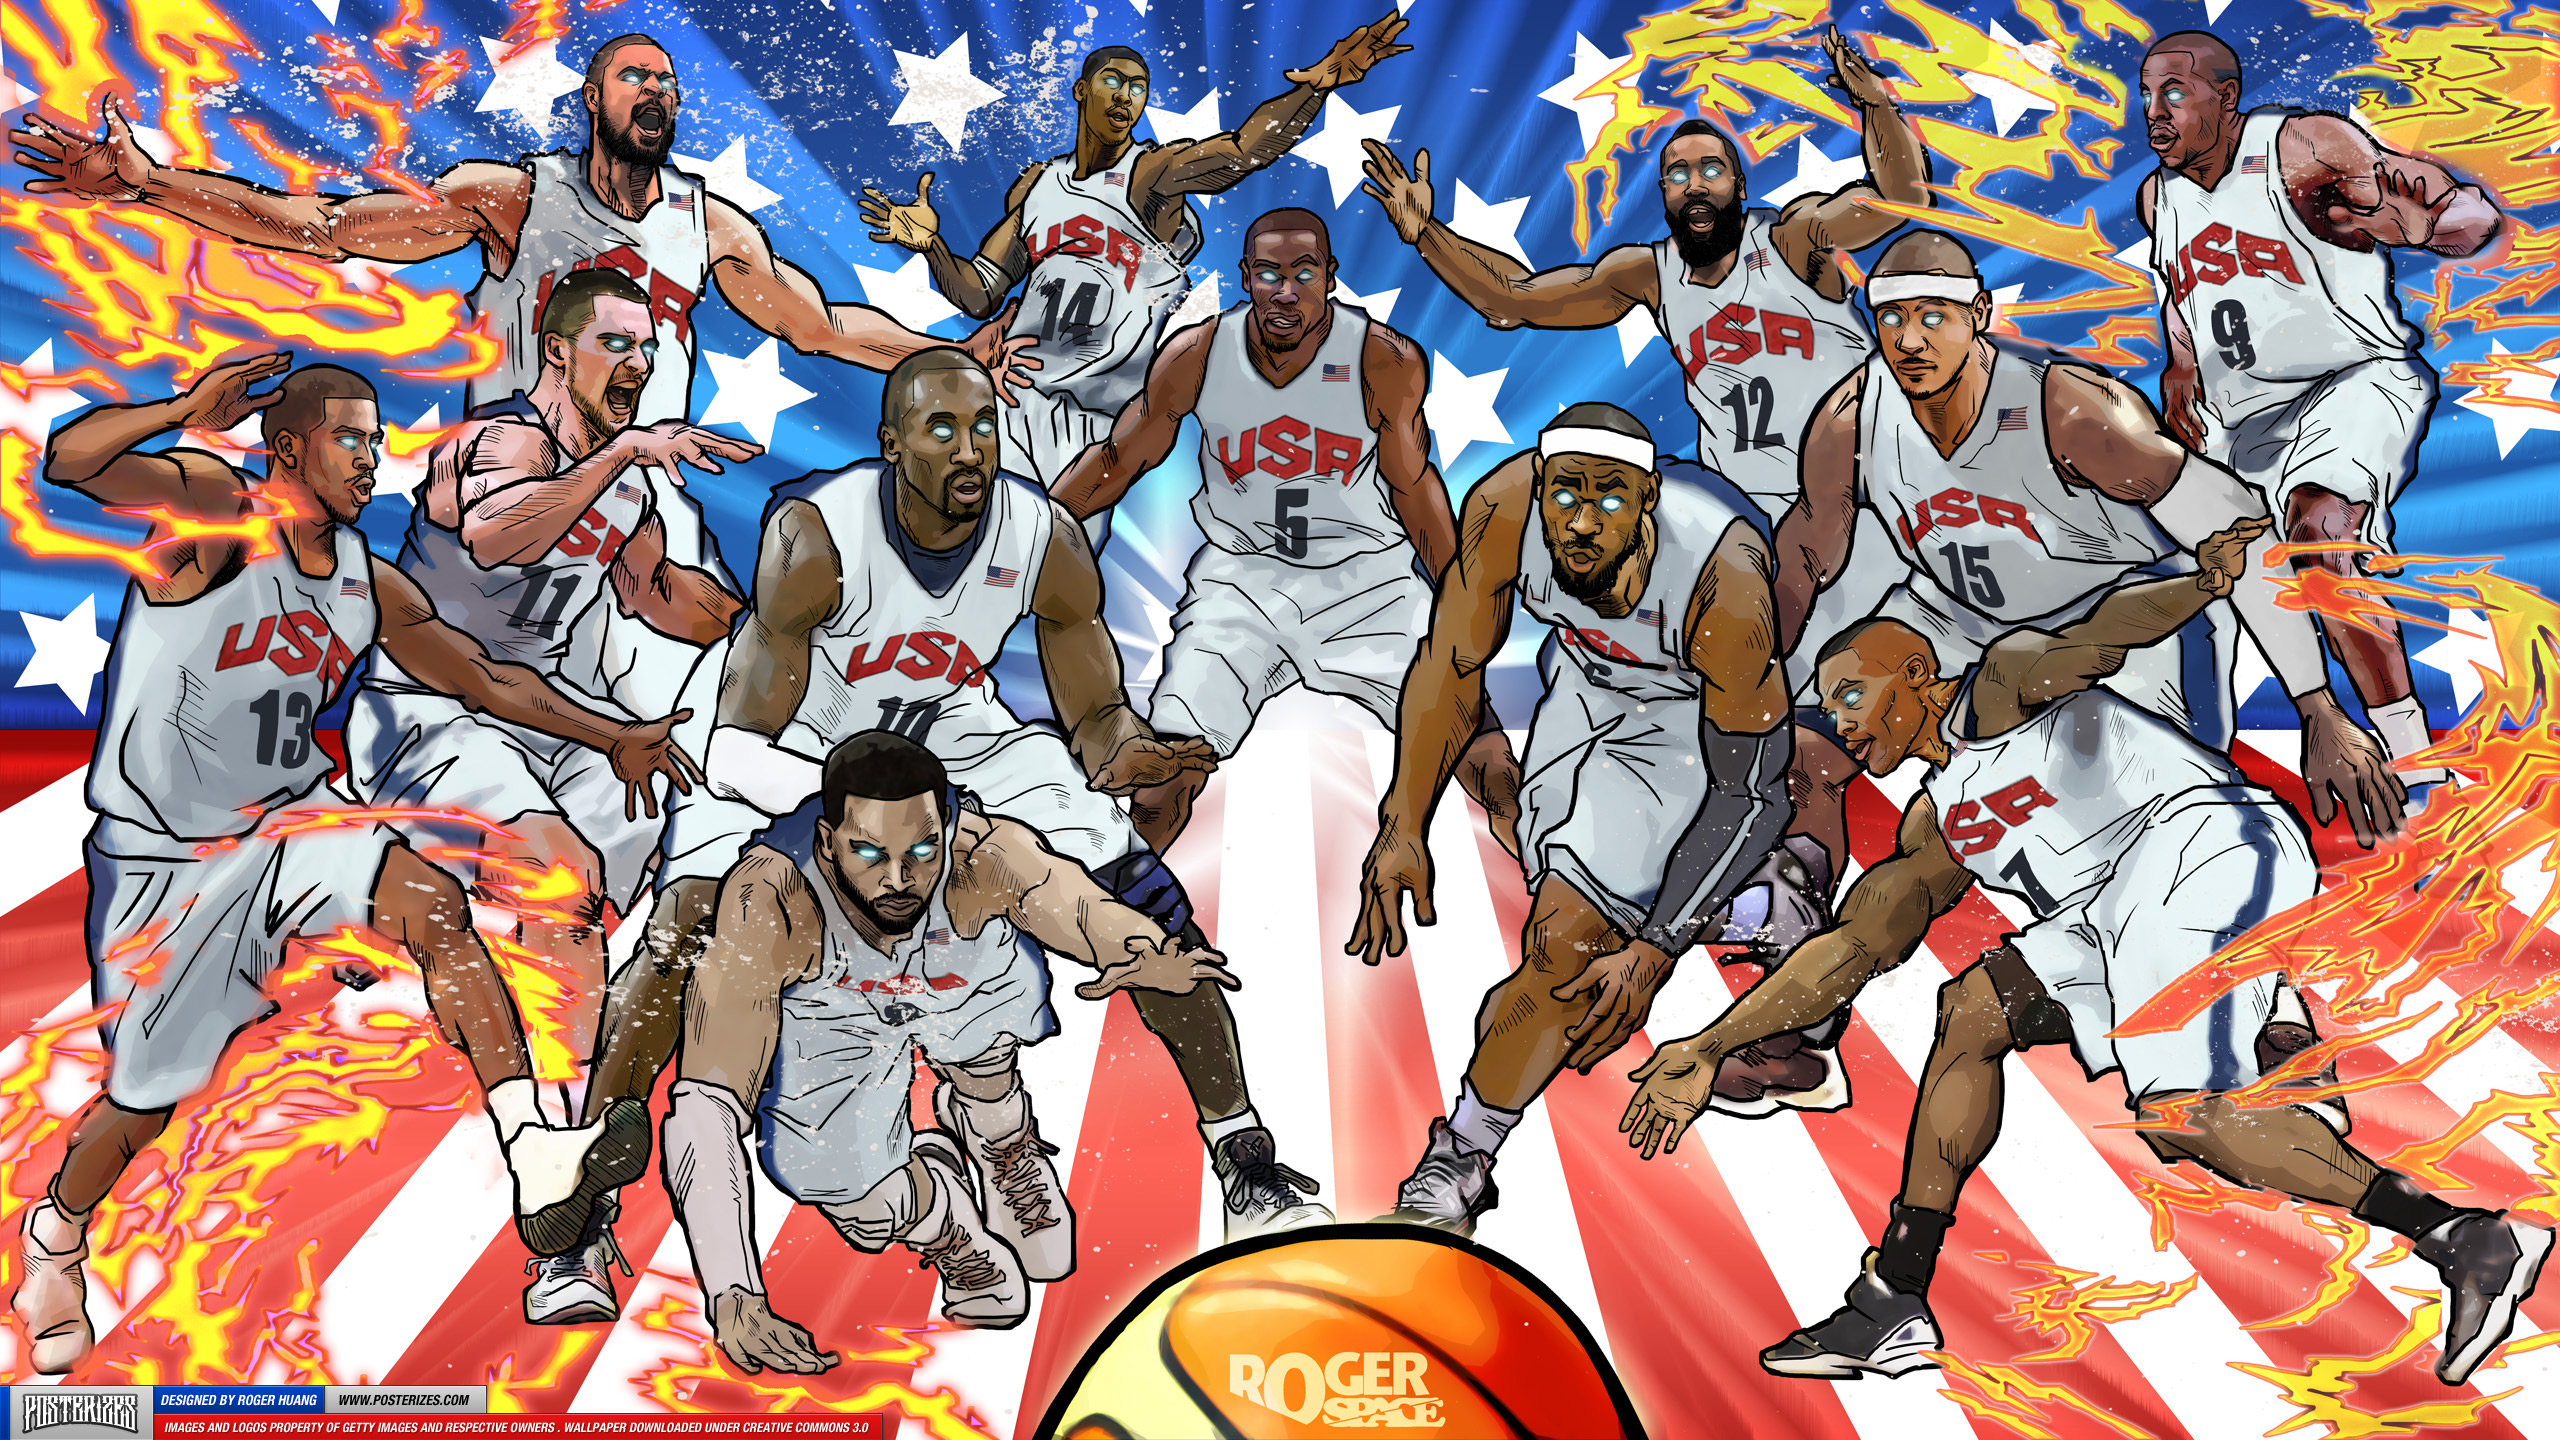 TEAM USA 2012 Olympic Wallpaper Posterizes NBA Wallpapers 2560x1440